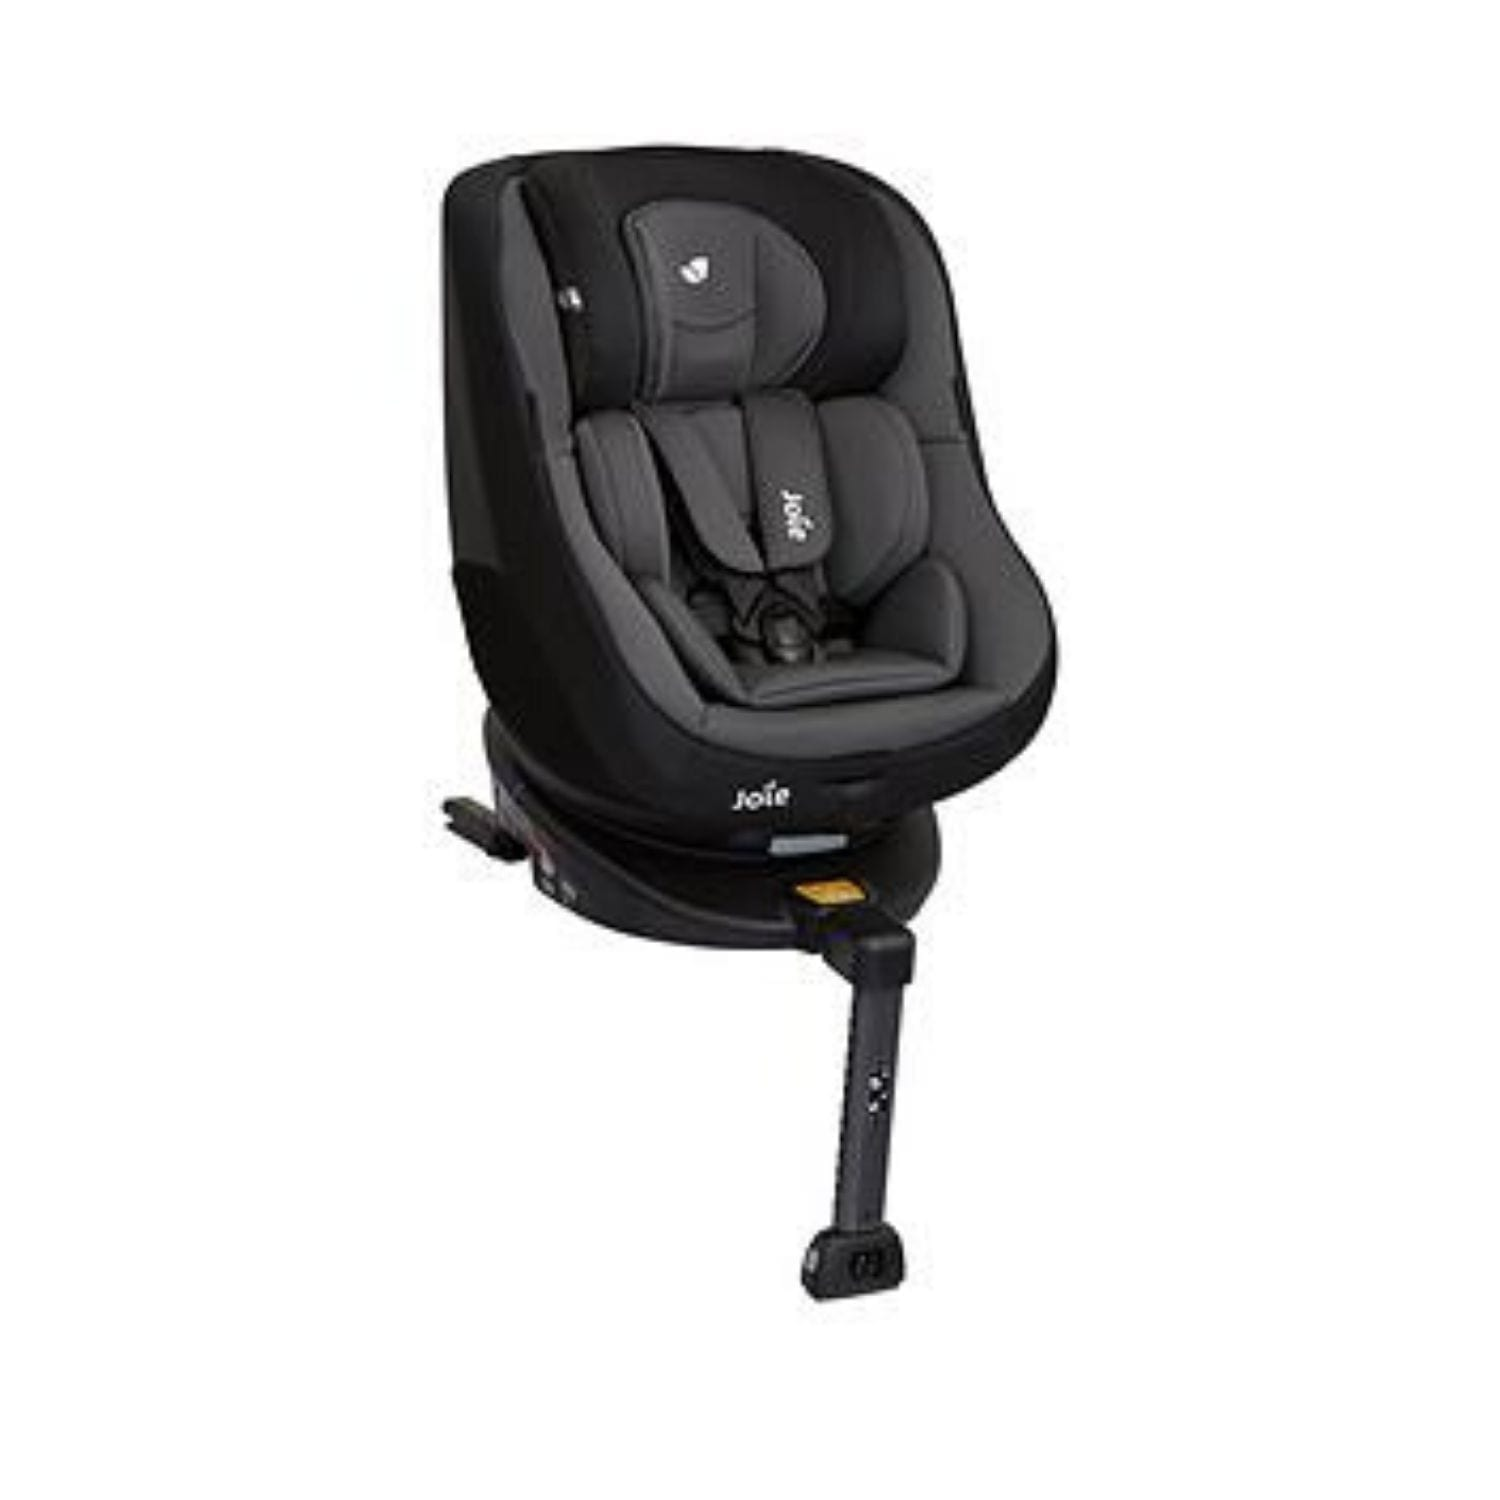 Joie Baby Spin 360 Group 0+/1 Car Seat product image